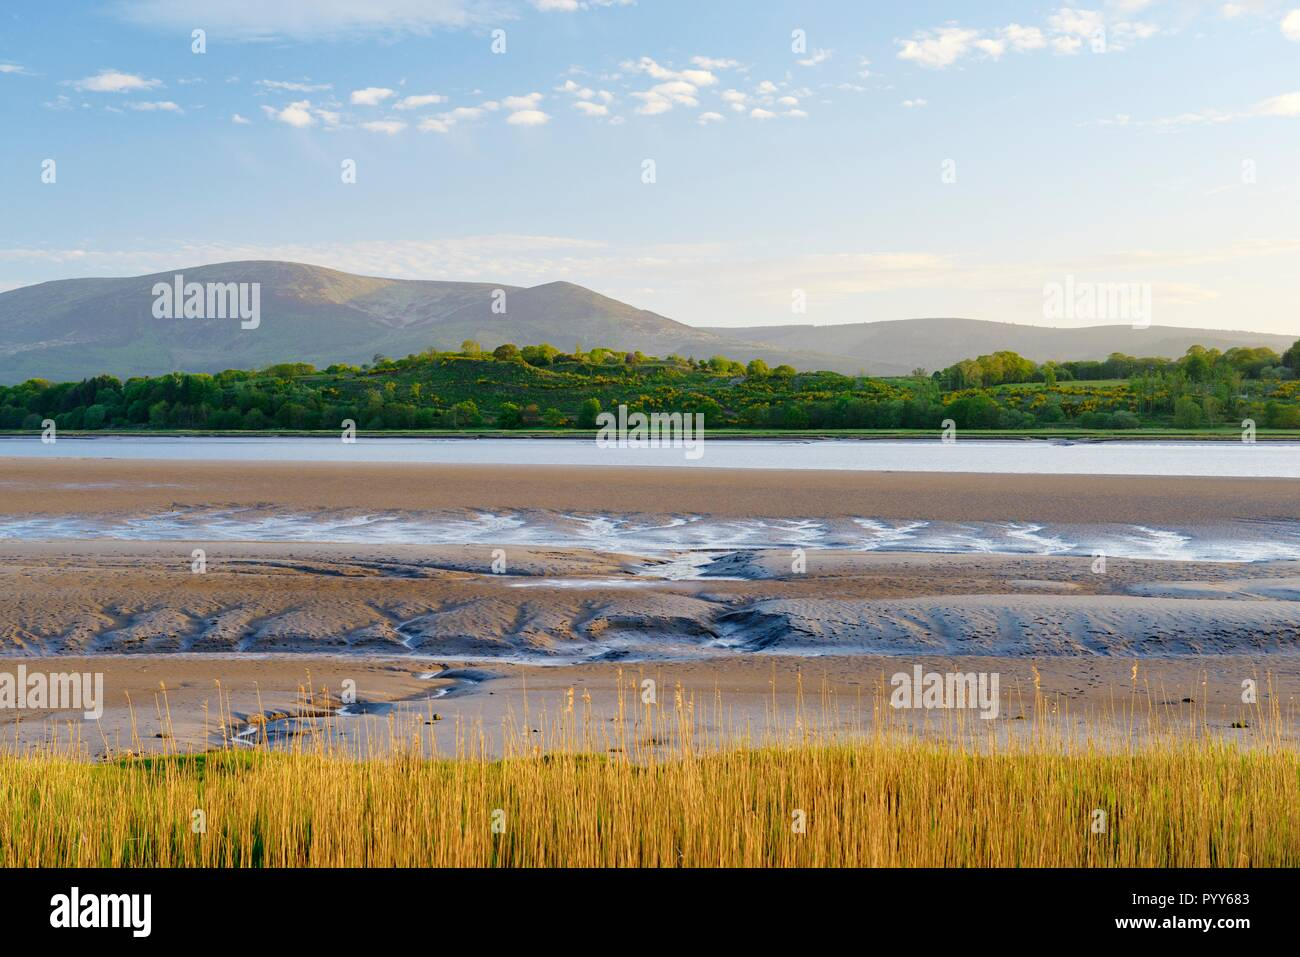 The River Nith, Dumfries and Galloway, Scotland. West across the tidal estuary mud flats on Solway Firth at Caerlaverock toward the mountain of Criffe Stock Photo